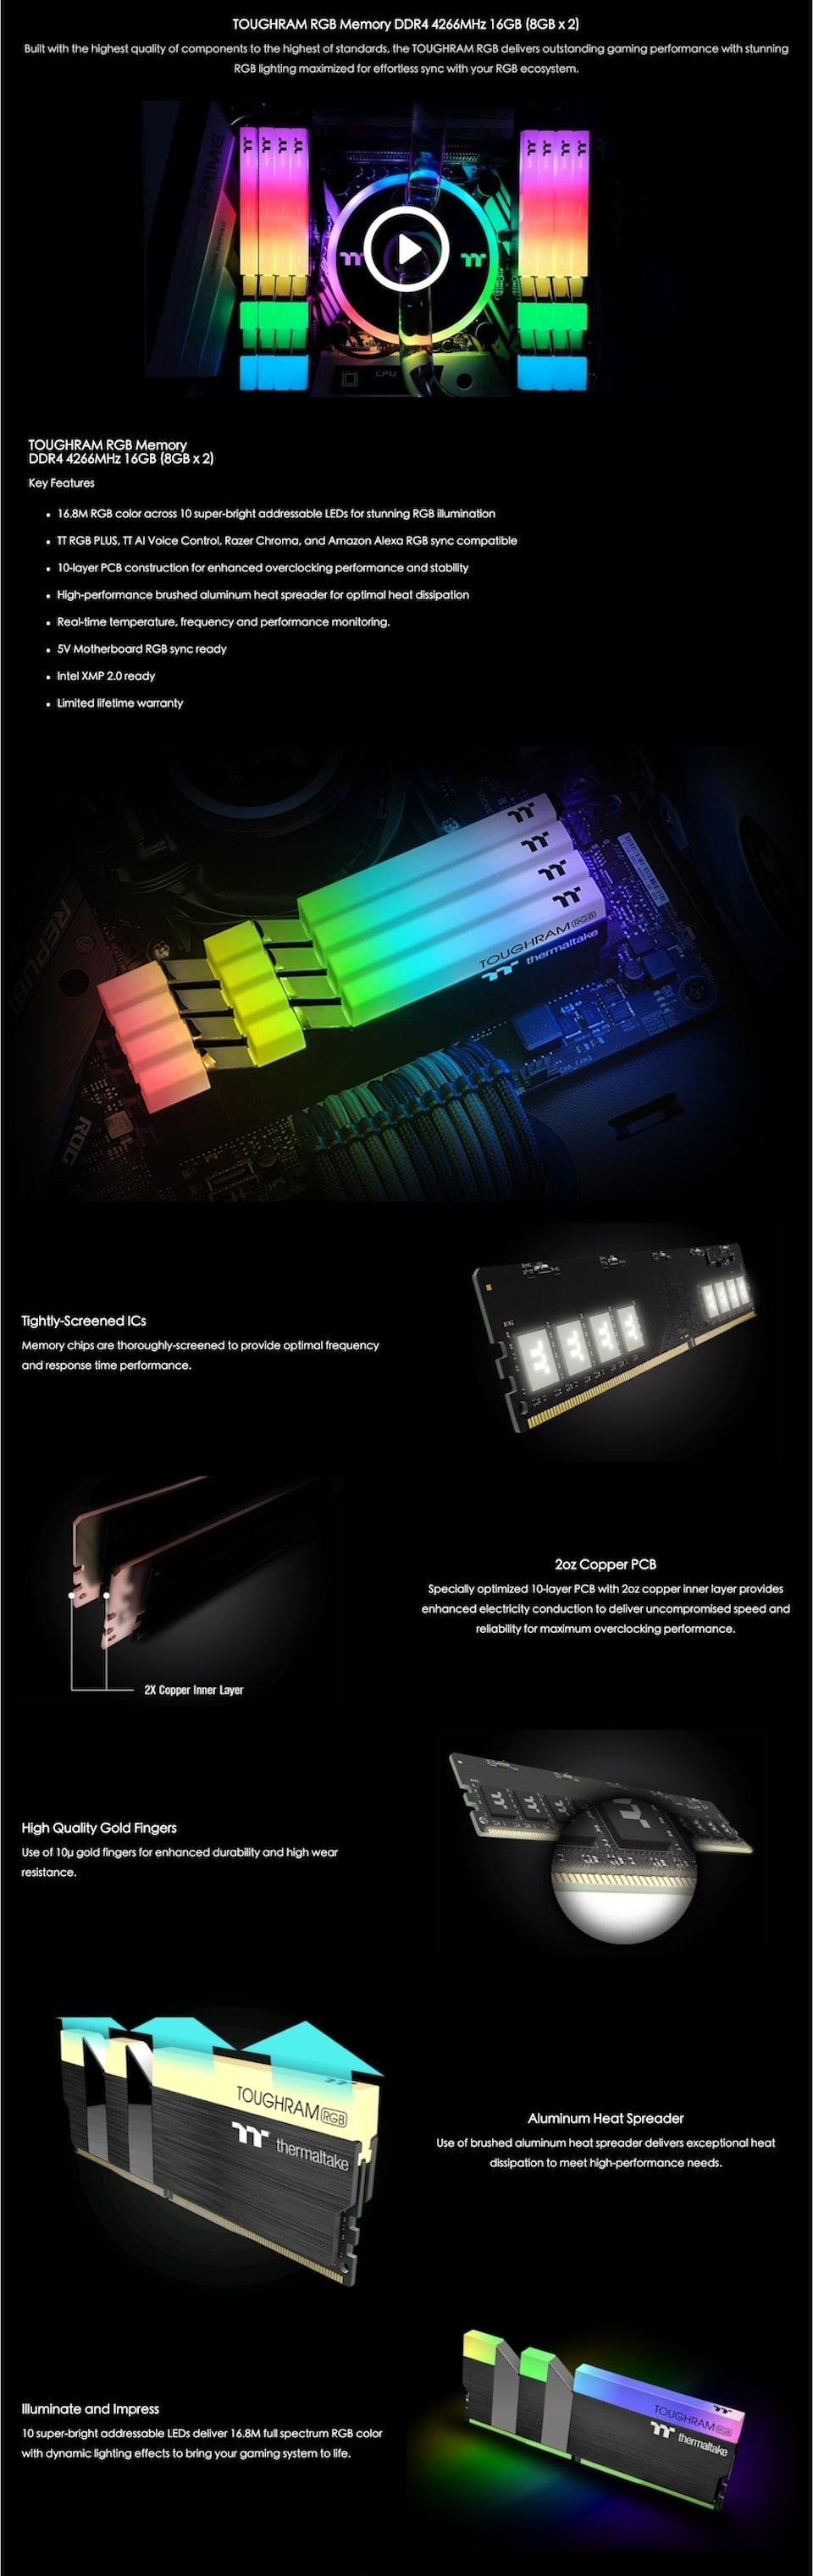 Thermaltake ToughRAM RGB 4000MHz 16GB (2x8GB) DDR4 features